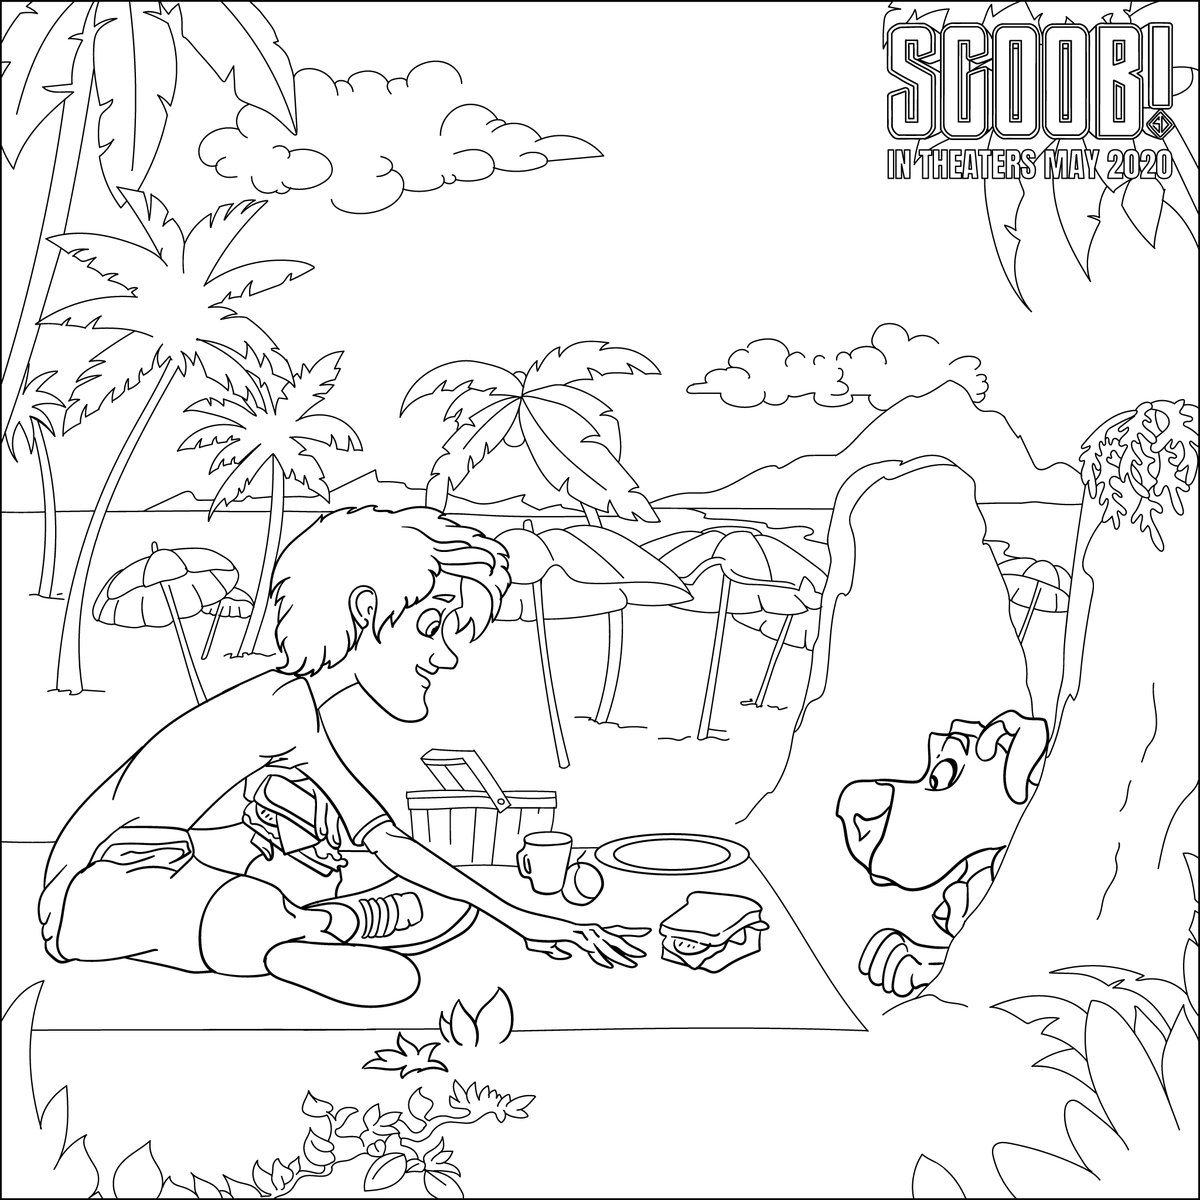 Emagine Theatres On Twitter Keep The Kiddos And Yourself Occuppied With These Scoob Coloring Pages Feel Free To Show Off Your Masterpieces Below Https T Co Qzsrcgplri